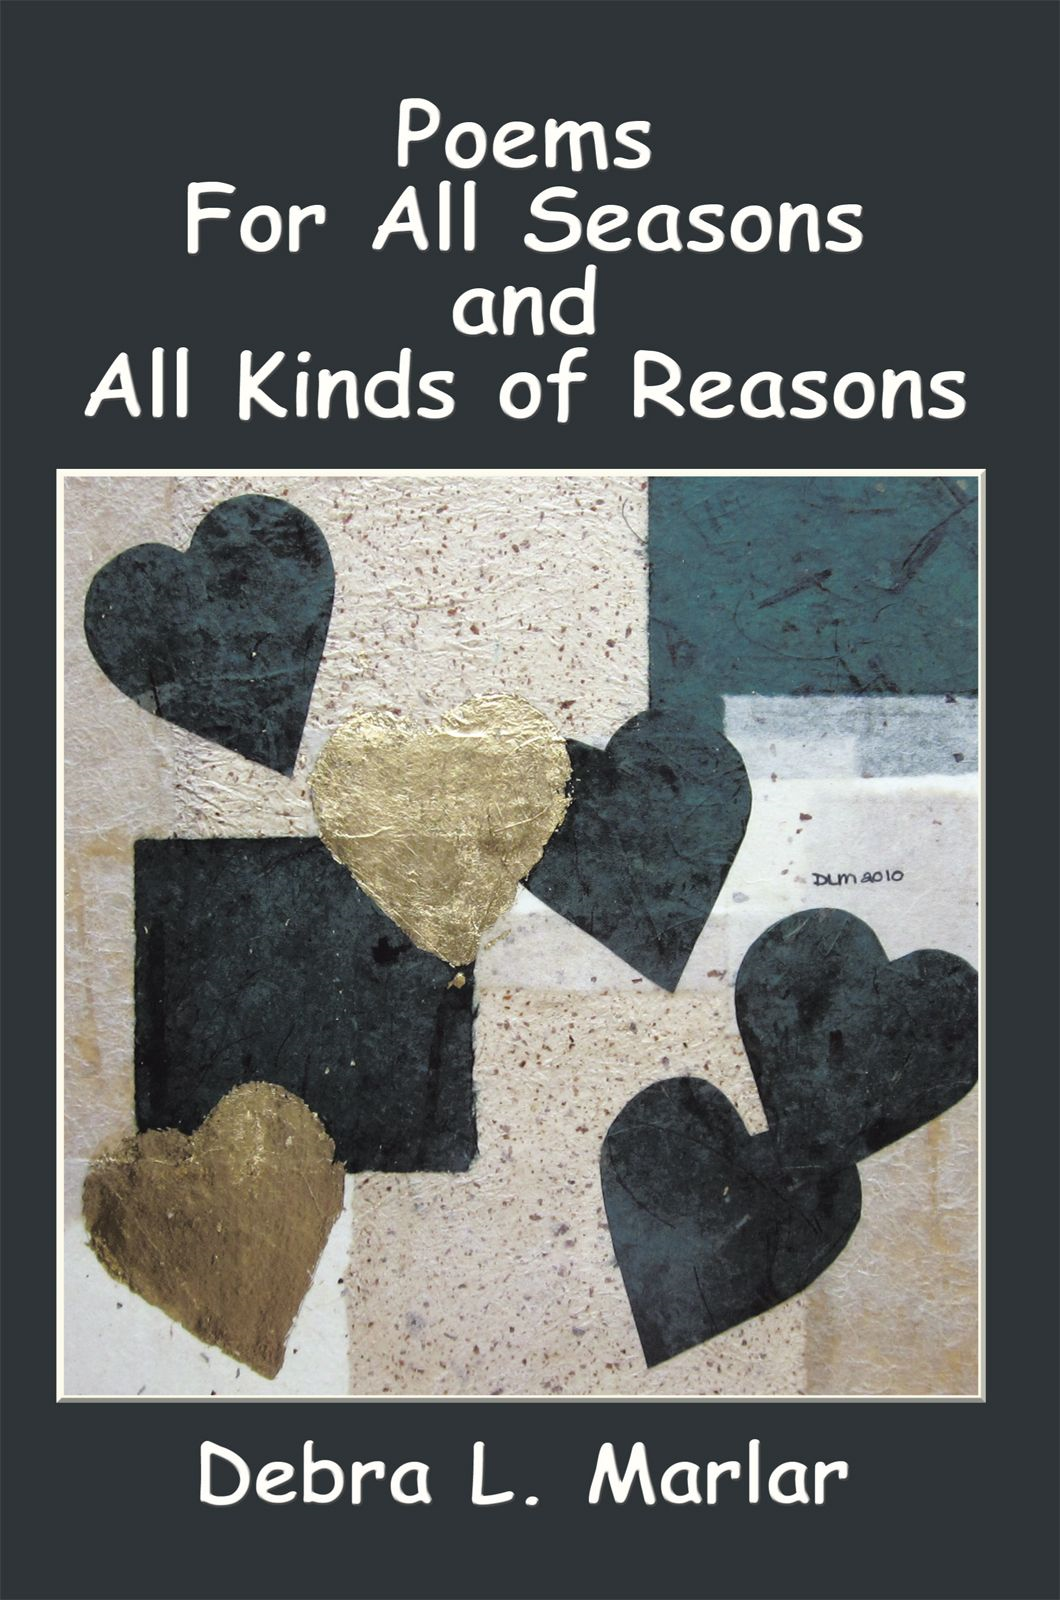 Poems For All Seasons And All Kinds Of Reasons By: Debra L. Marlar